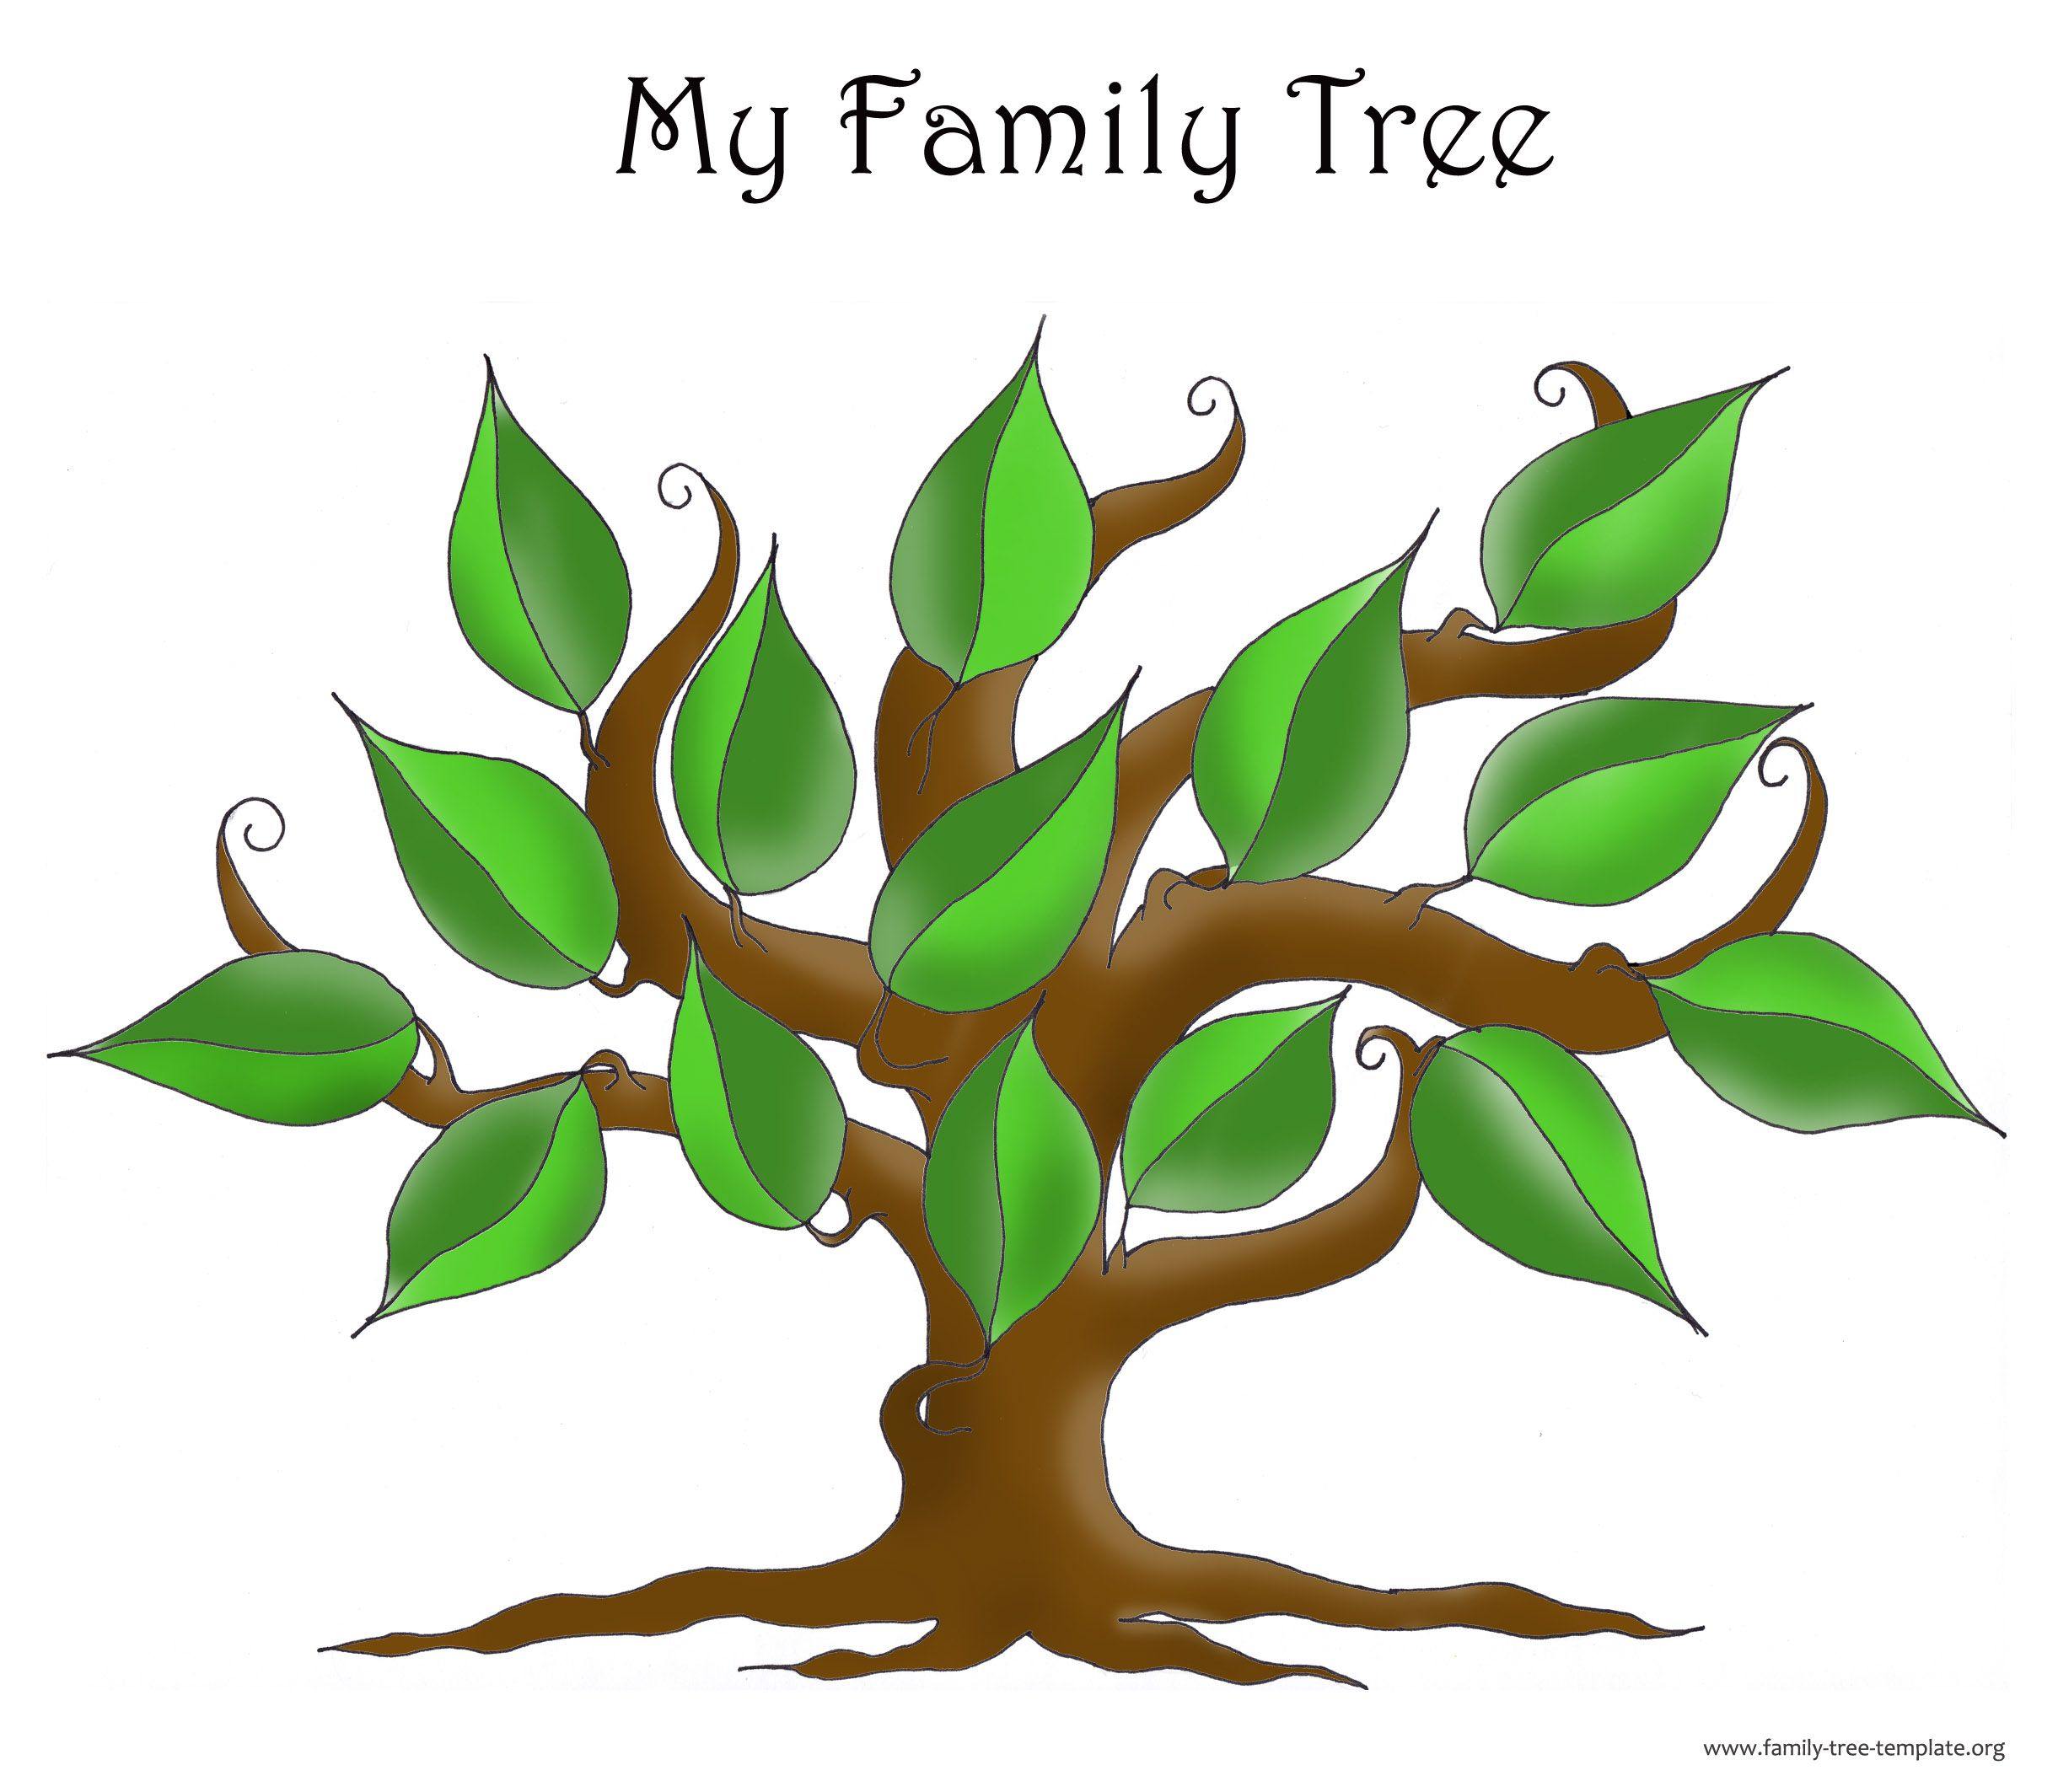 Free Blank Family Tree Template The Non Structured With Leaves Enough To Include All Great